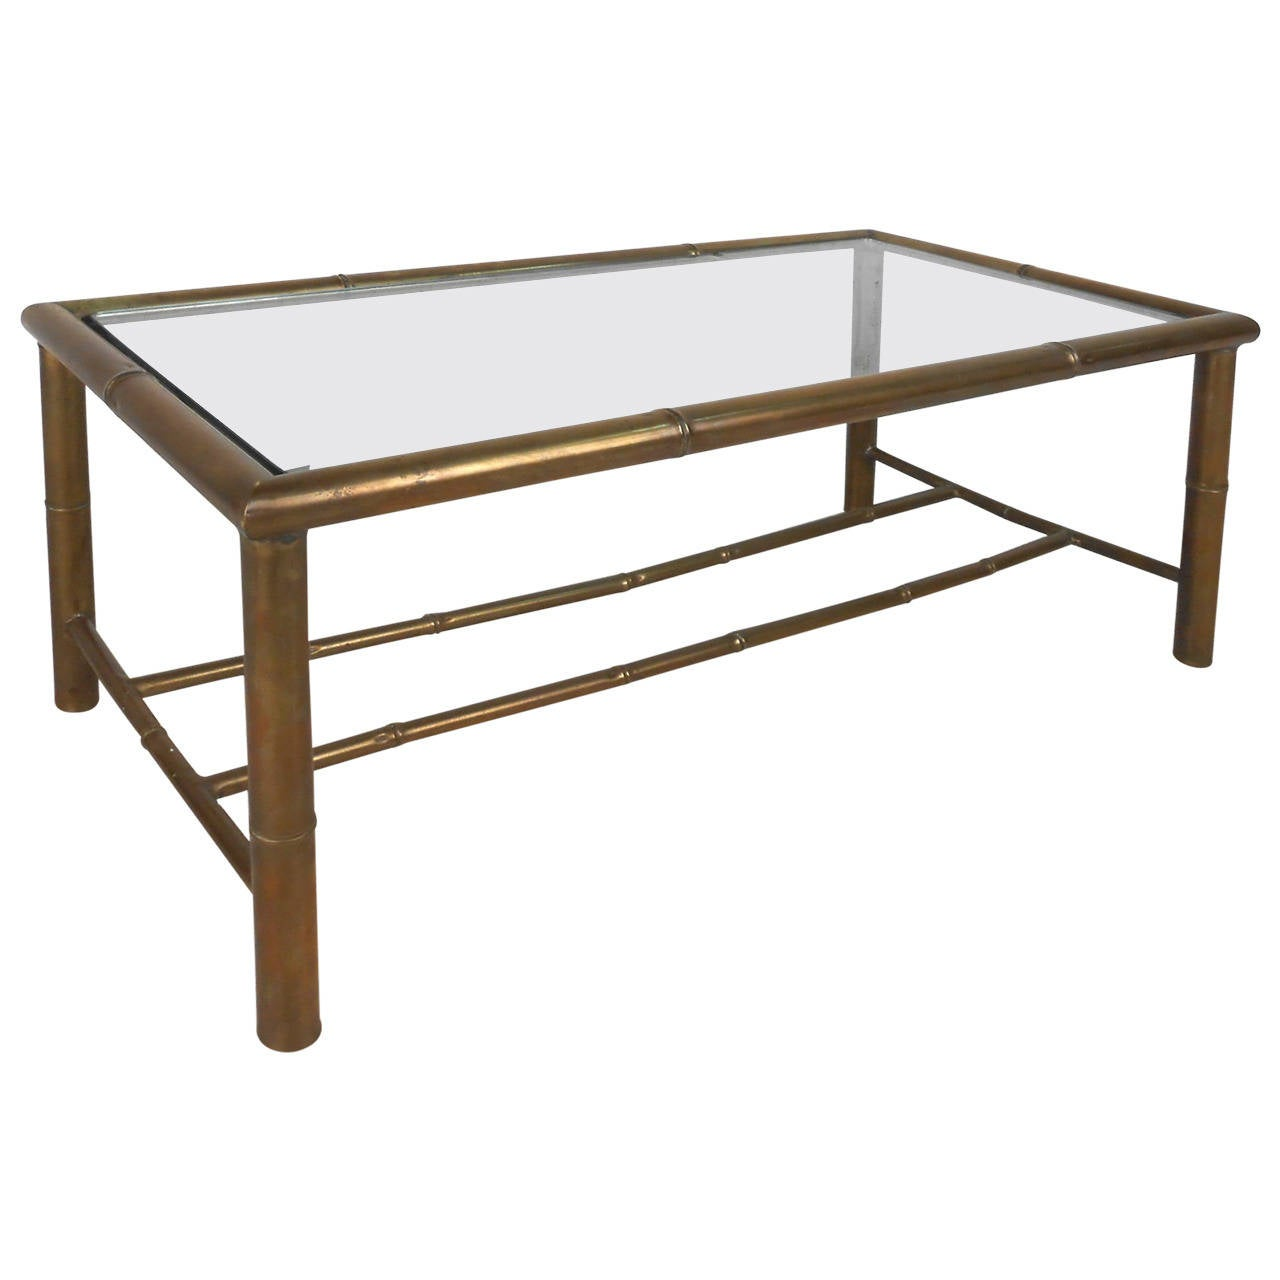 Hollywood Regency Style Mid-Century Modern Brass Faux Bamboo Table